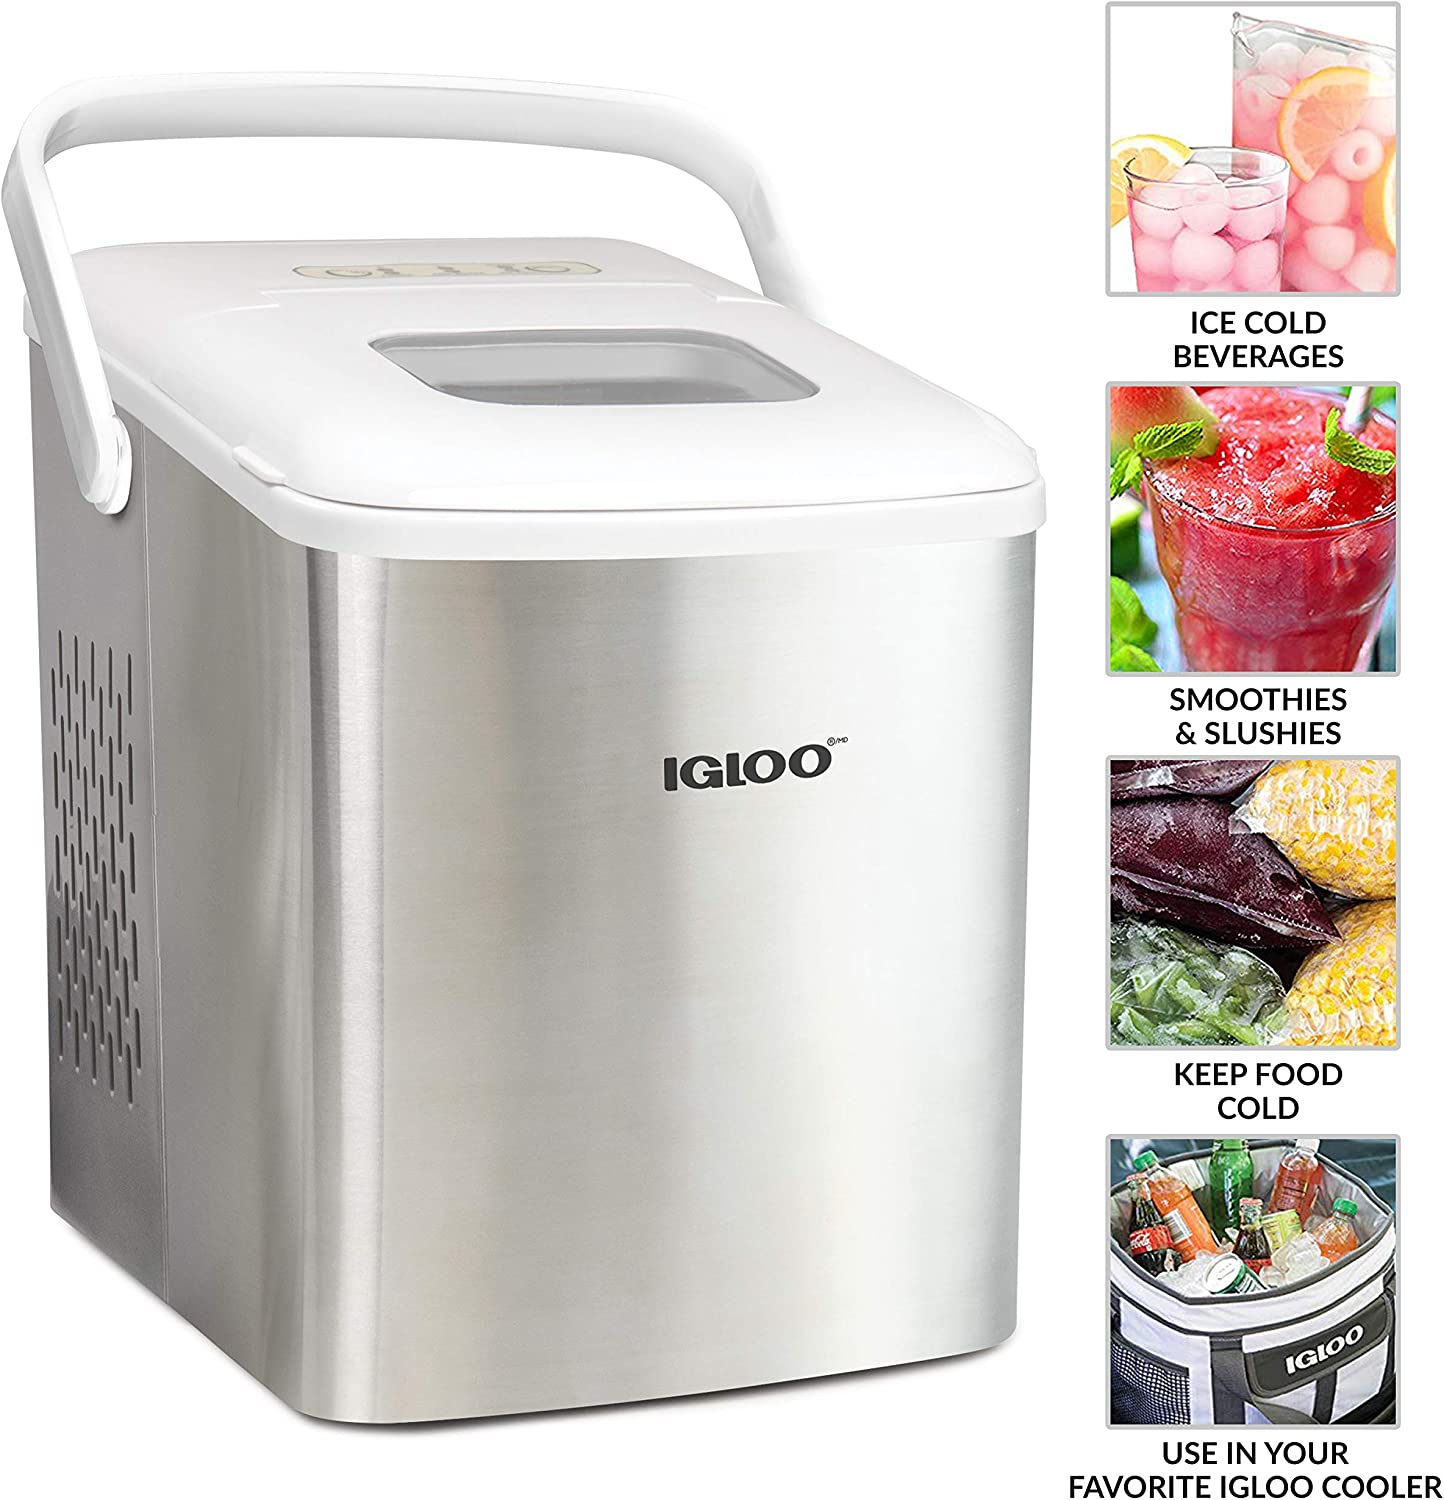 Igloo Iceb26hnsswl Stainless Steel Automatic Self Cleaning Portable Electric Countertop Ice Maker Machine With Handle 9 Ice Cubes Ready In 7 Minutes With Ice Scoop And Basket Stainless White Appliances